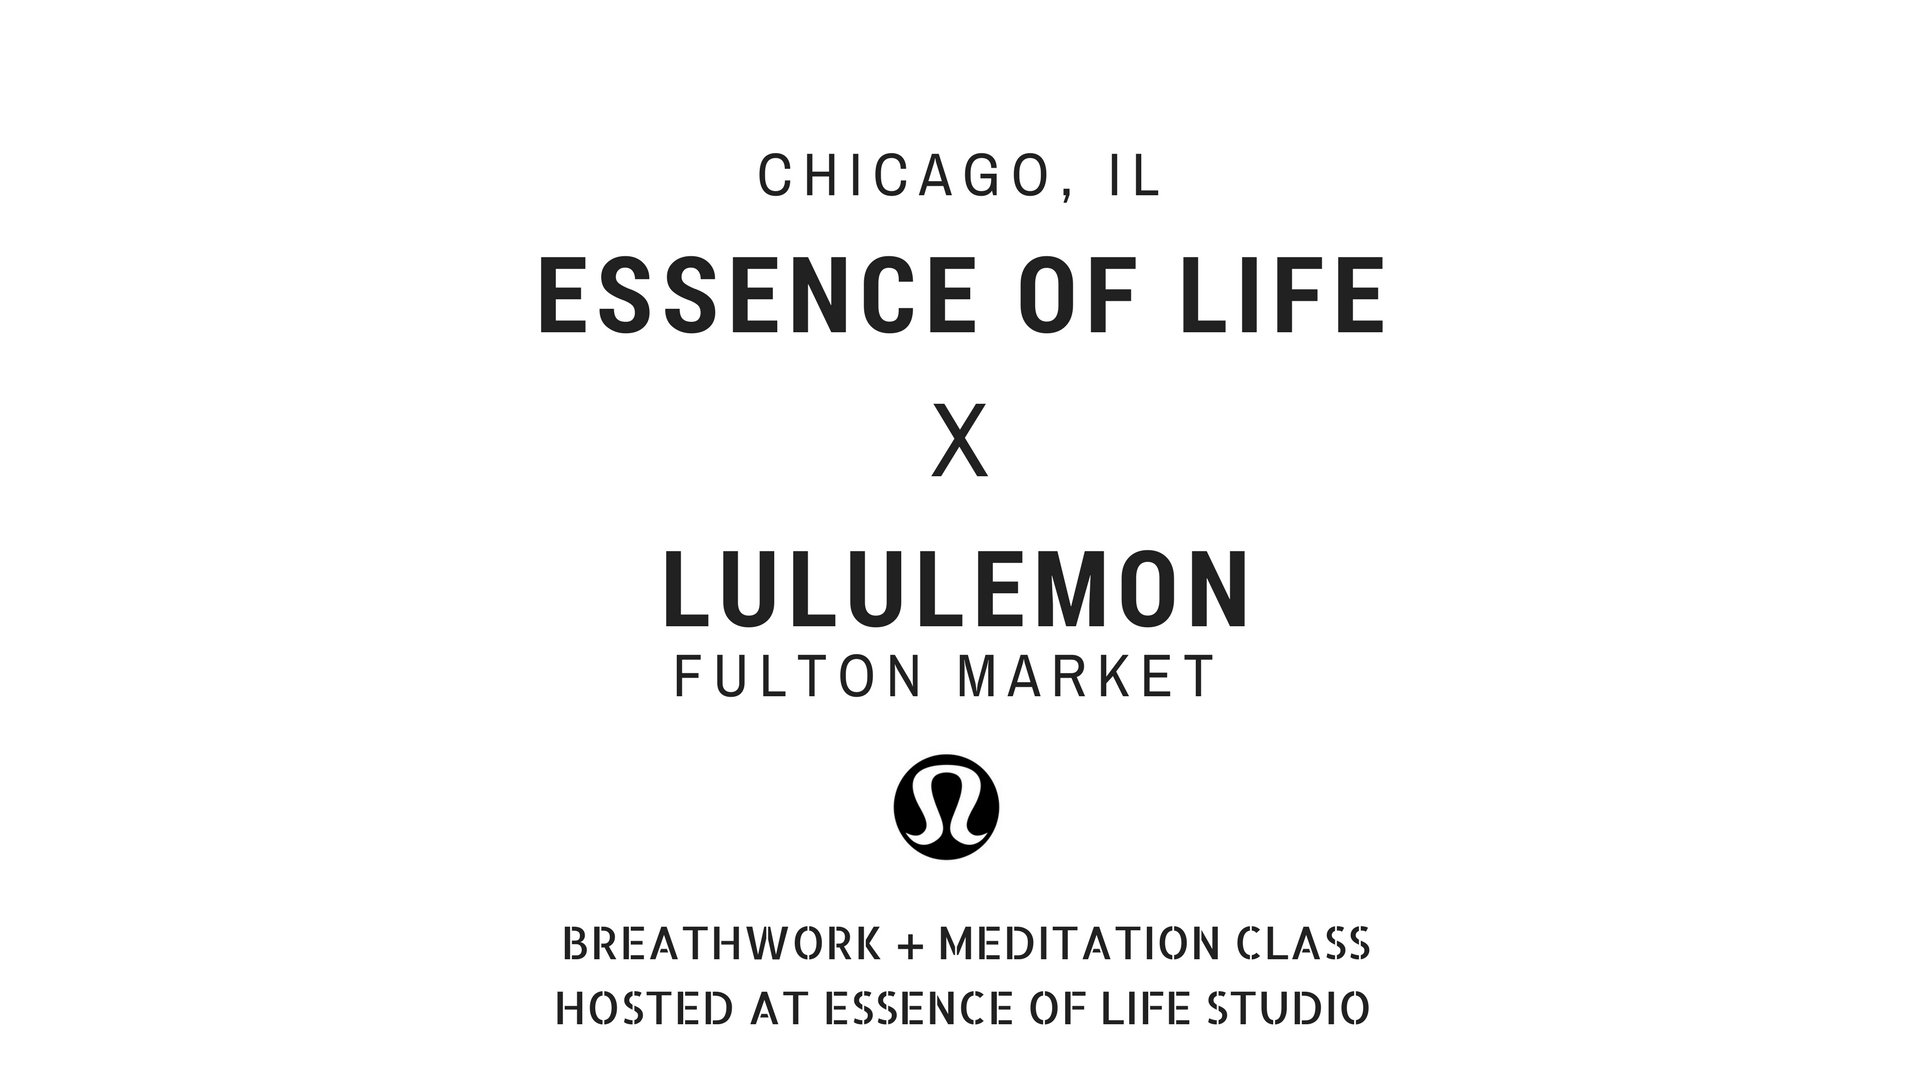 Lululemon Chi X Essence Of Life : Breathwork